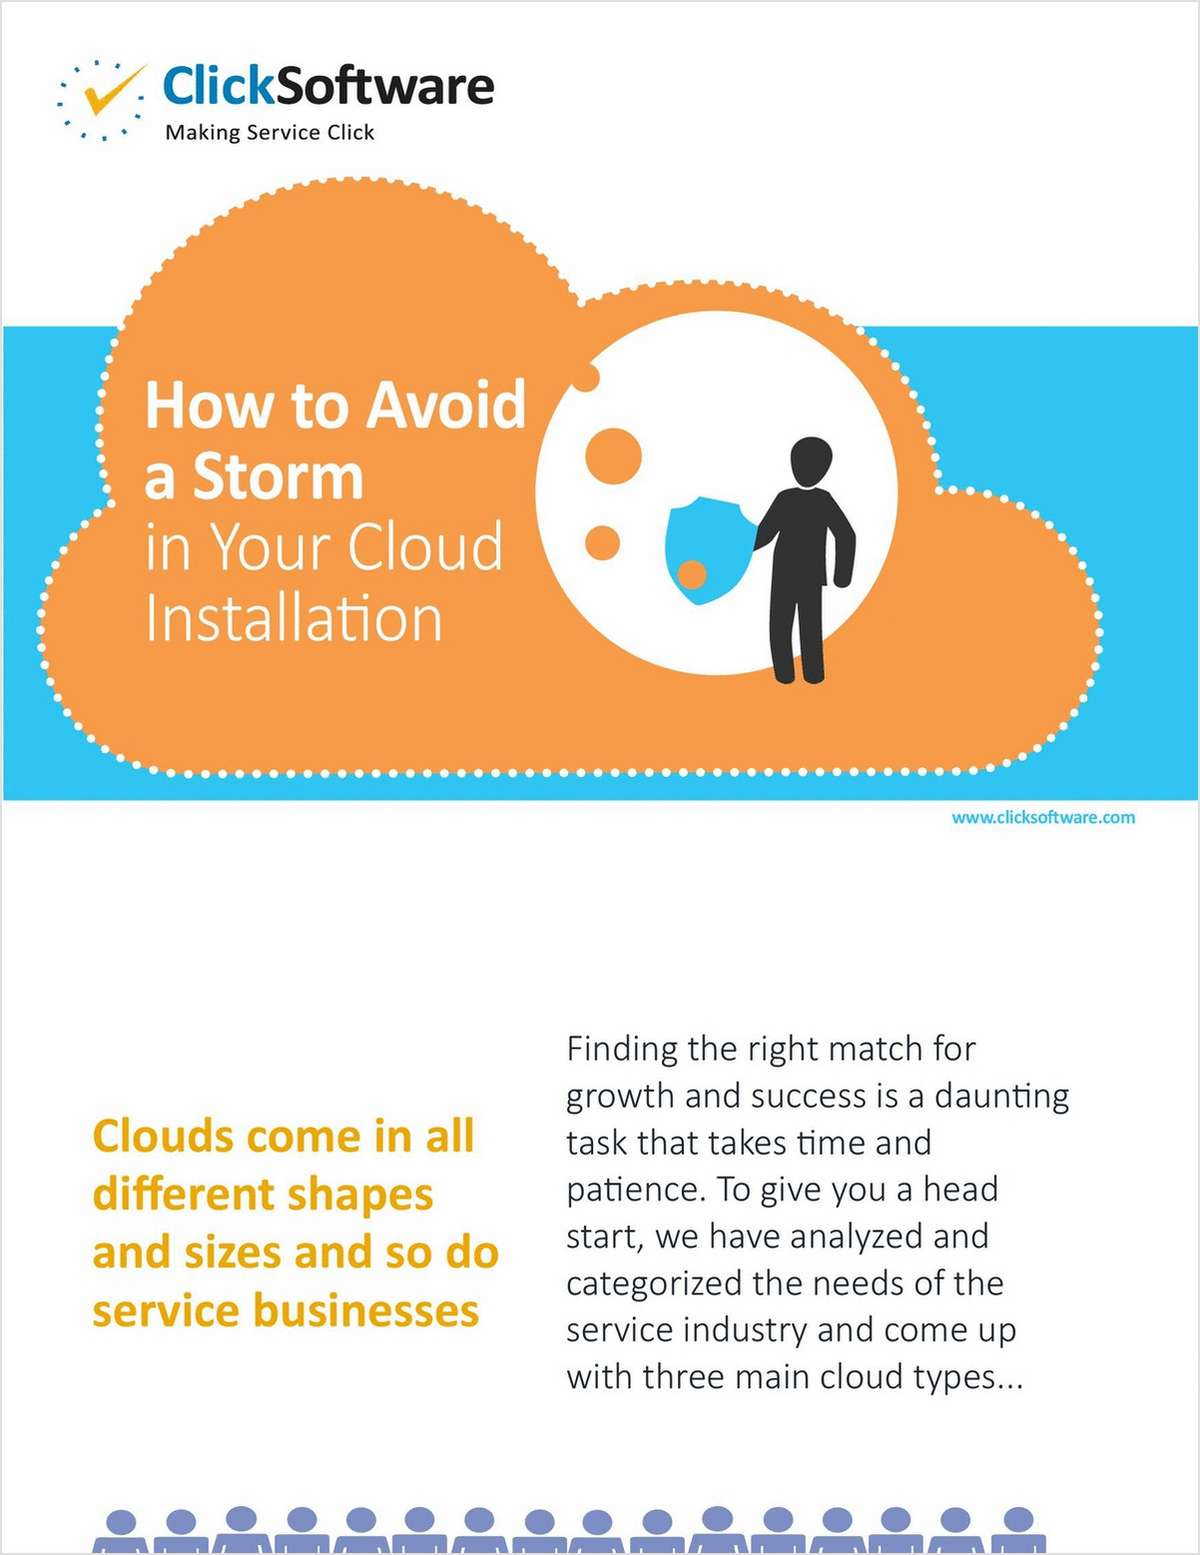 How to Avoid a Storm in Your Cloud Installation